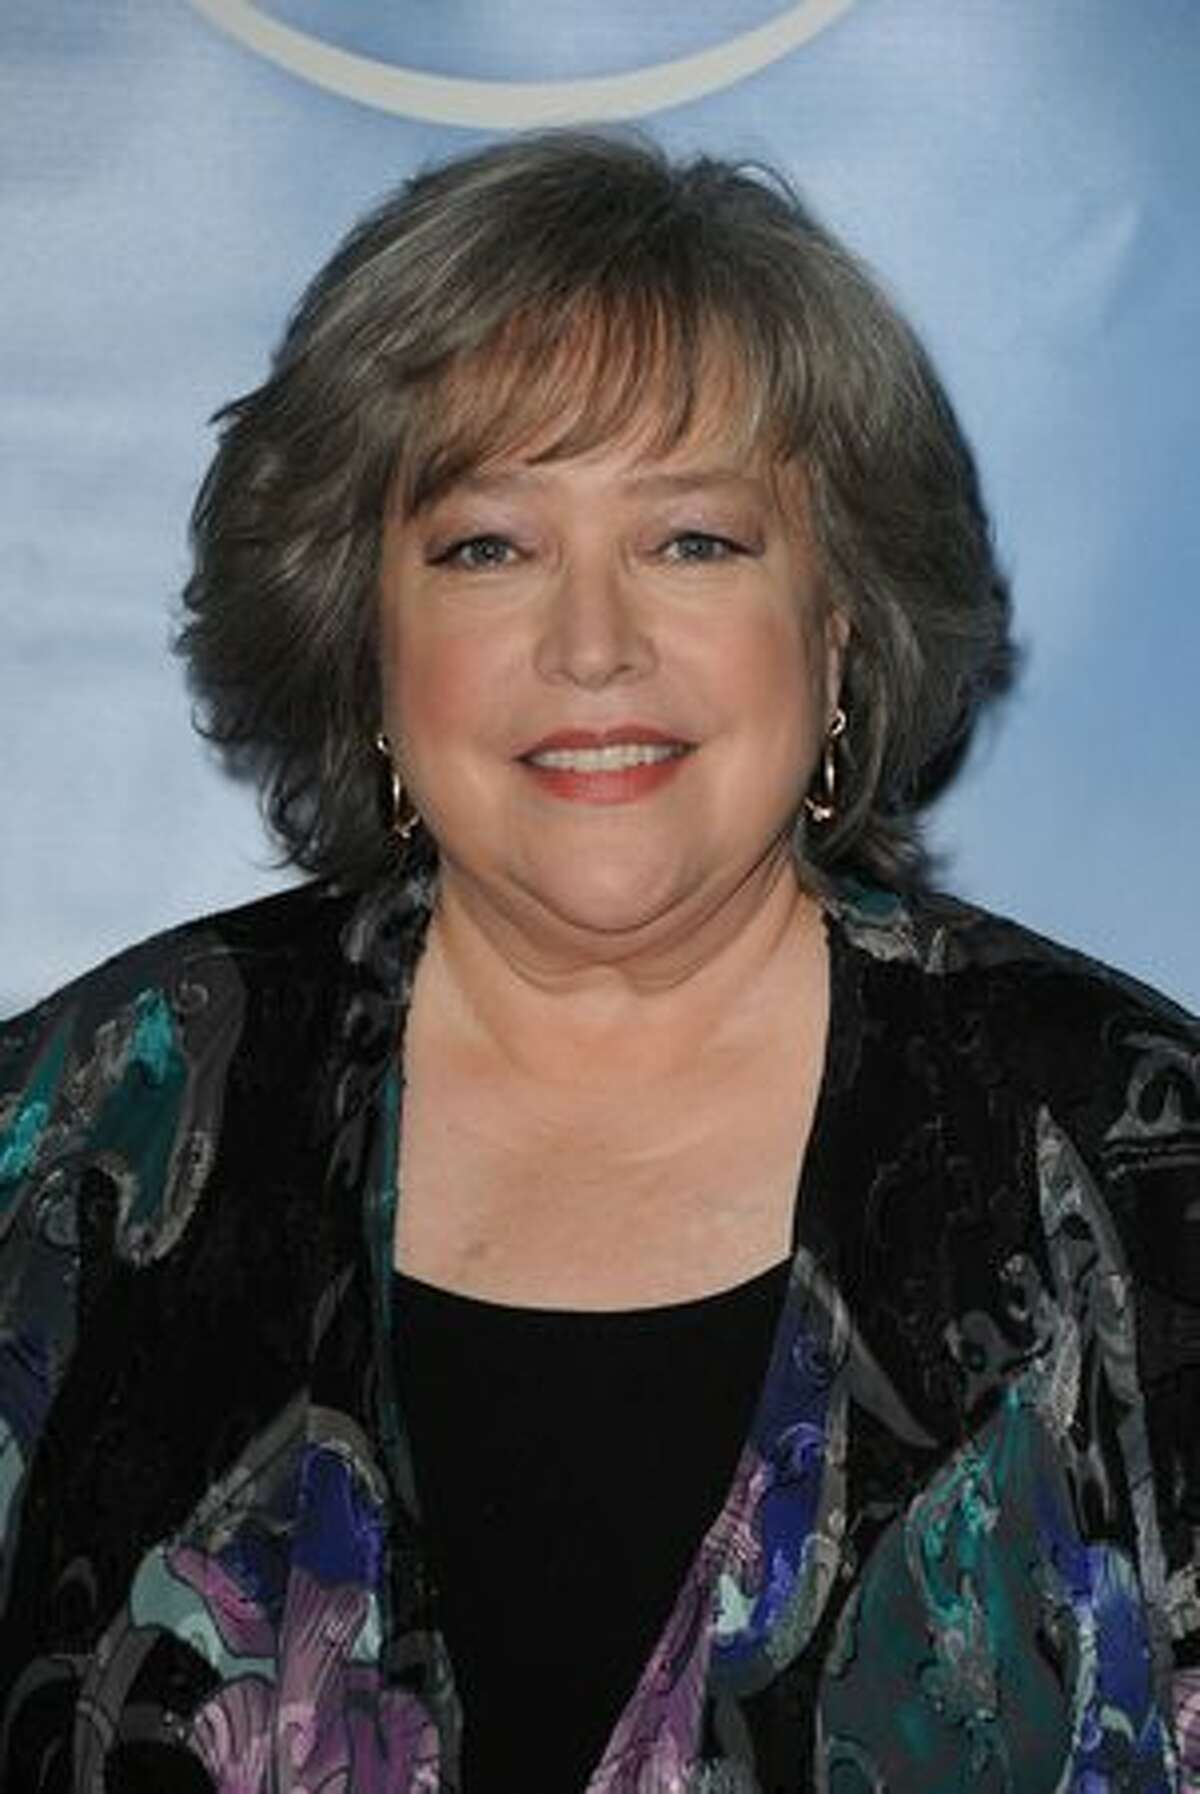 Actress Kathy Bates arrives at the NBC Universal 2011 Winter TCA Press Tour All-Star Party at the Langham Huntington Hotel in Pasadena, California.